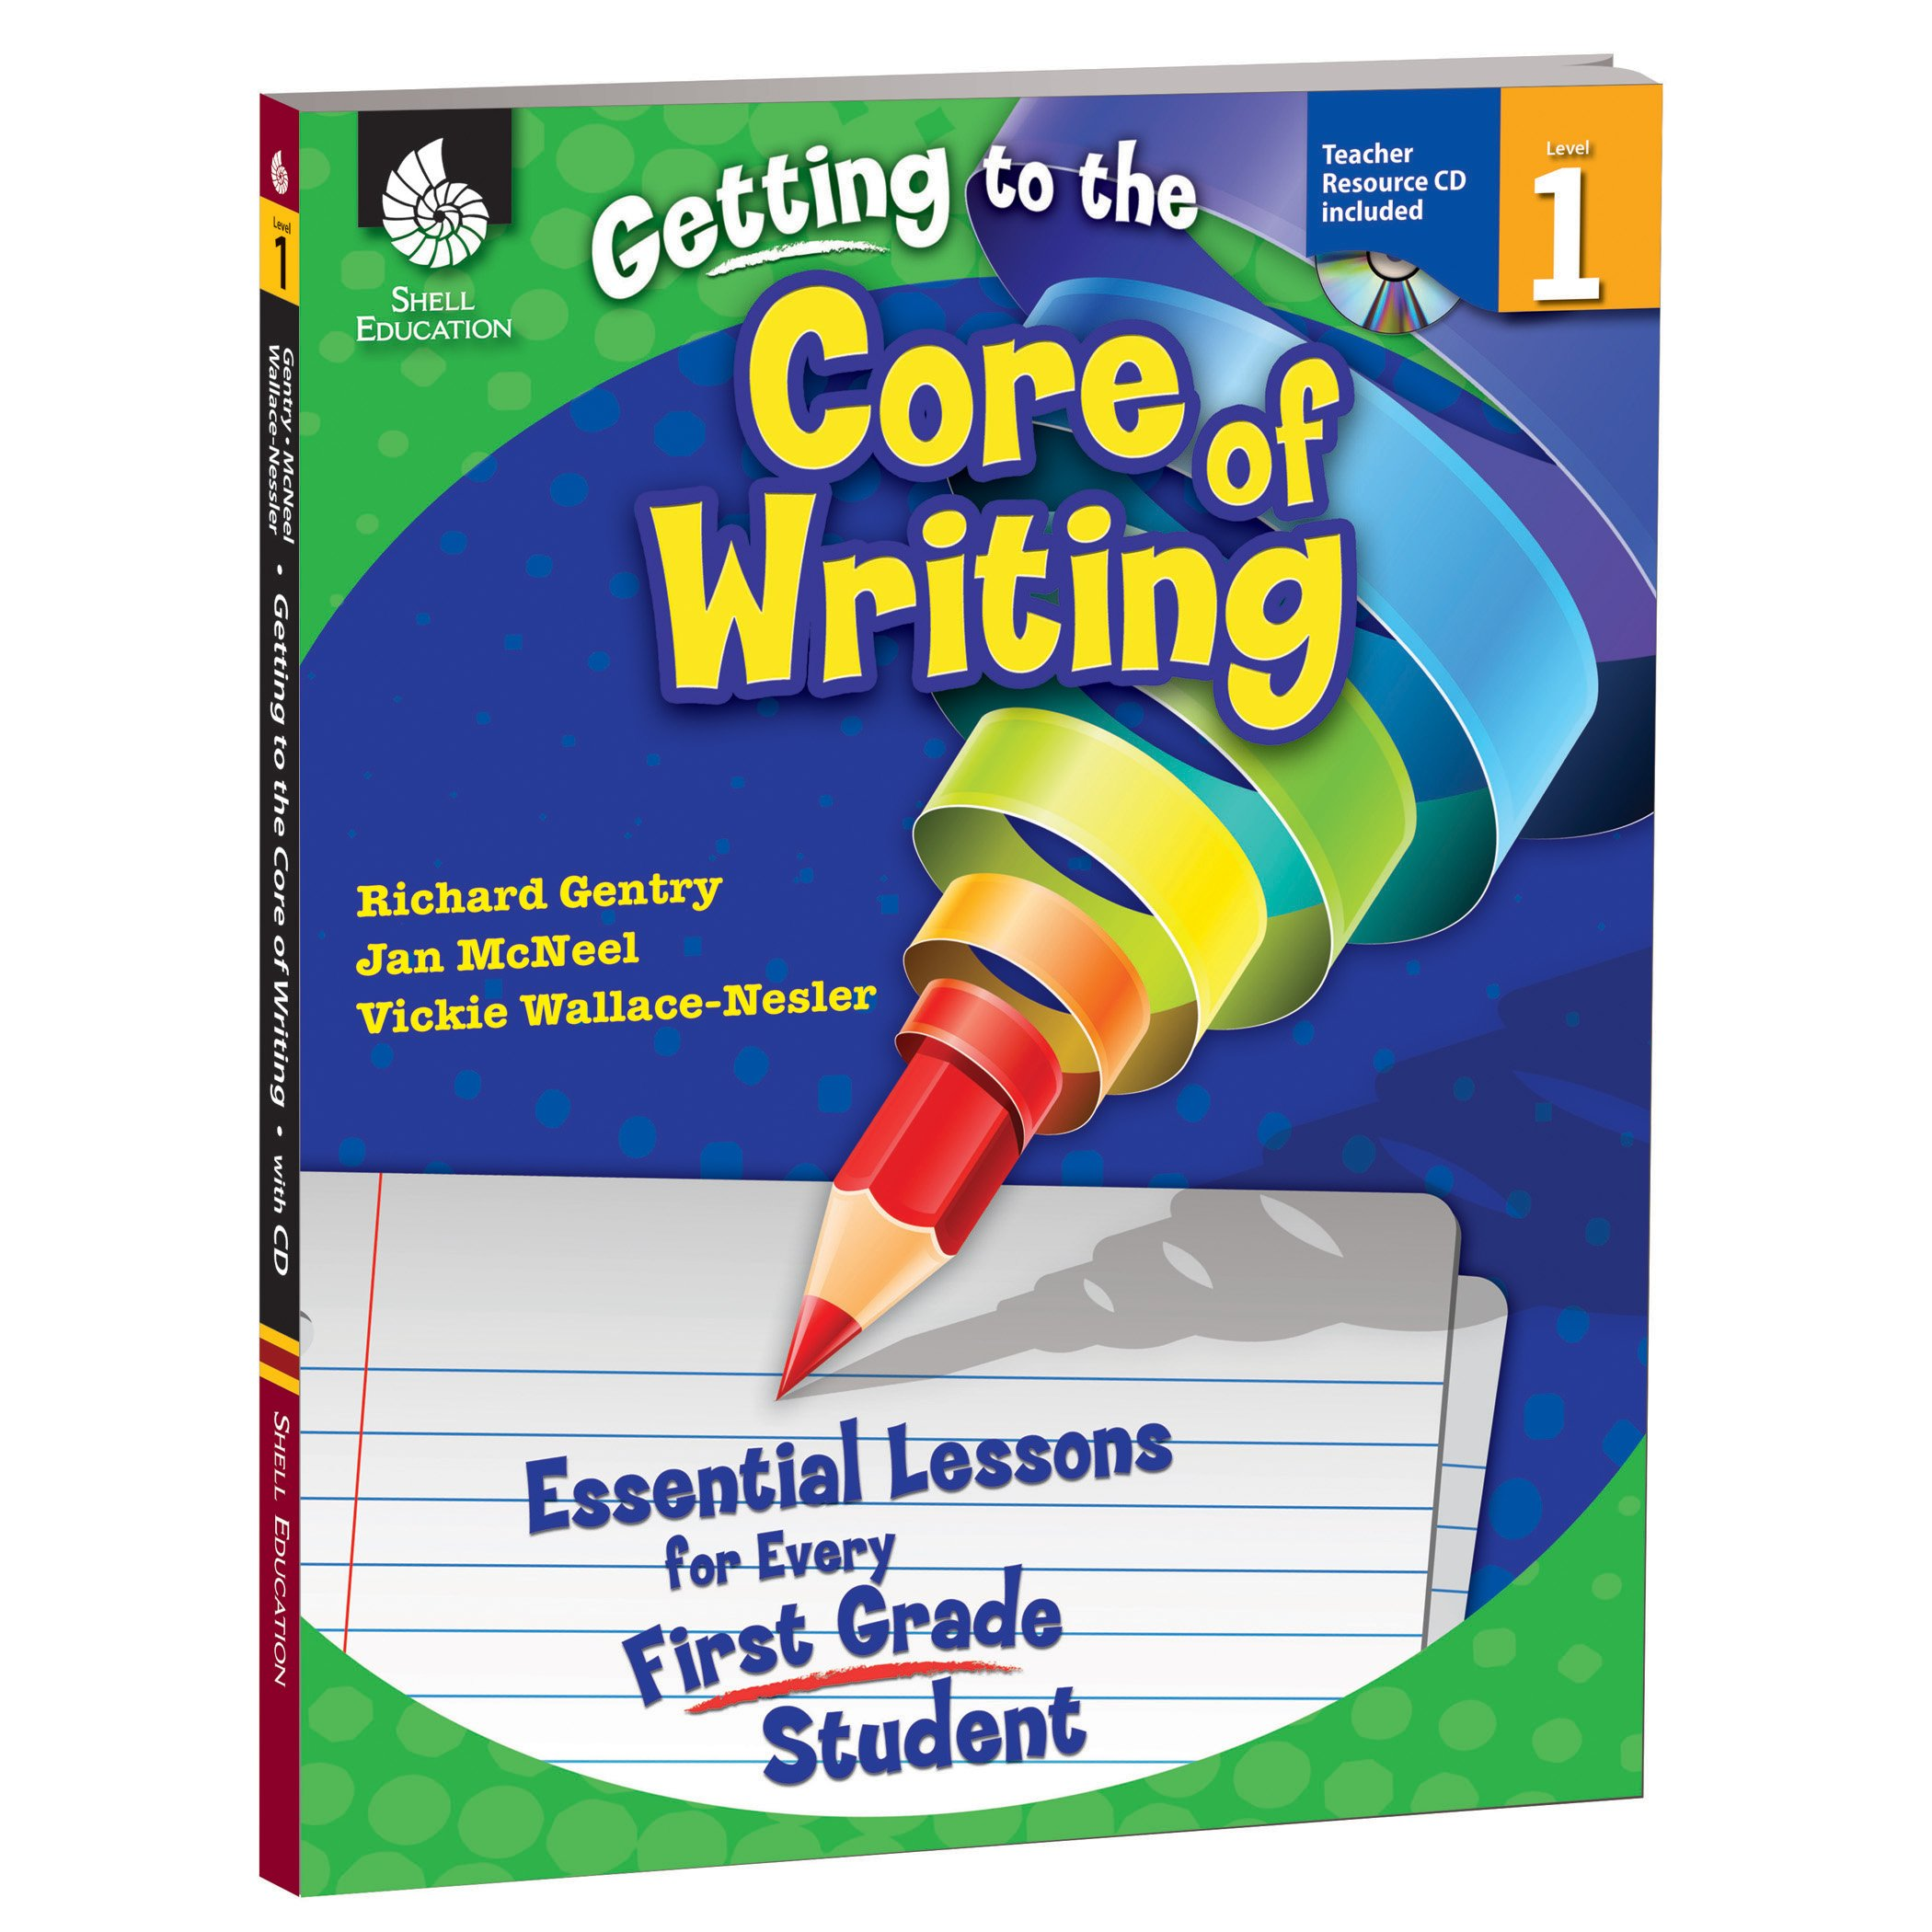 Getting to the Core of Writing: Essential Lessons for Every First Grade Student by Shell Education